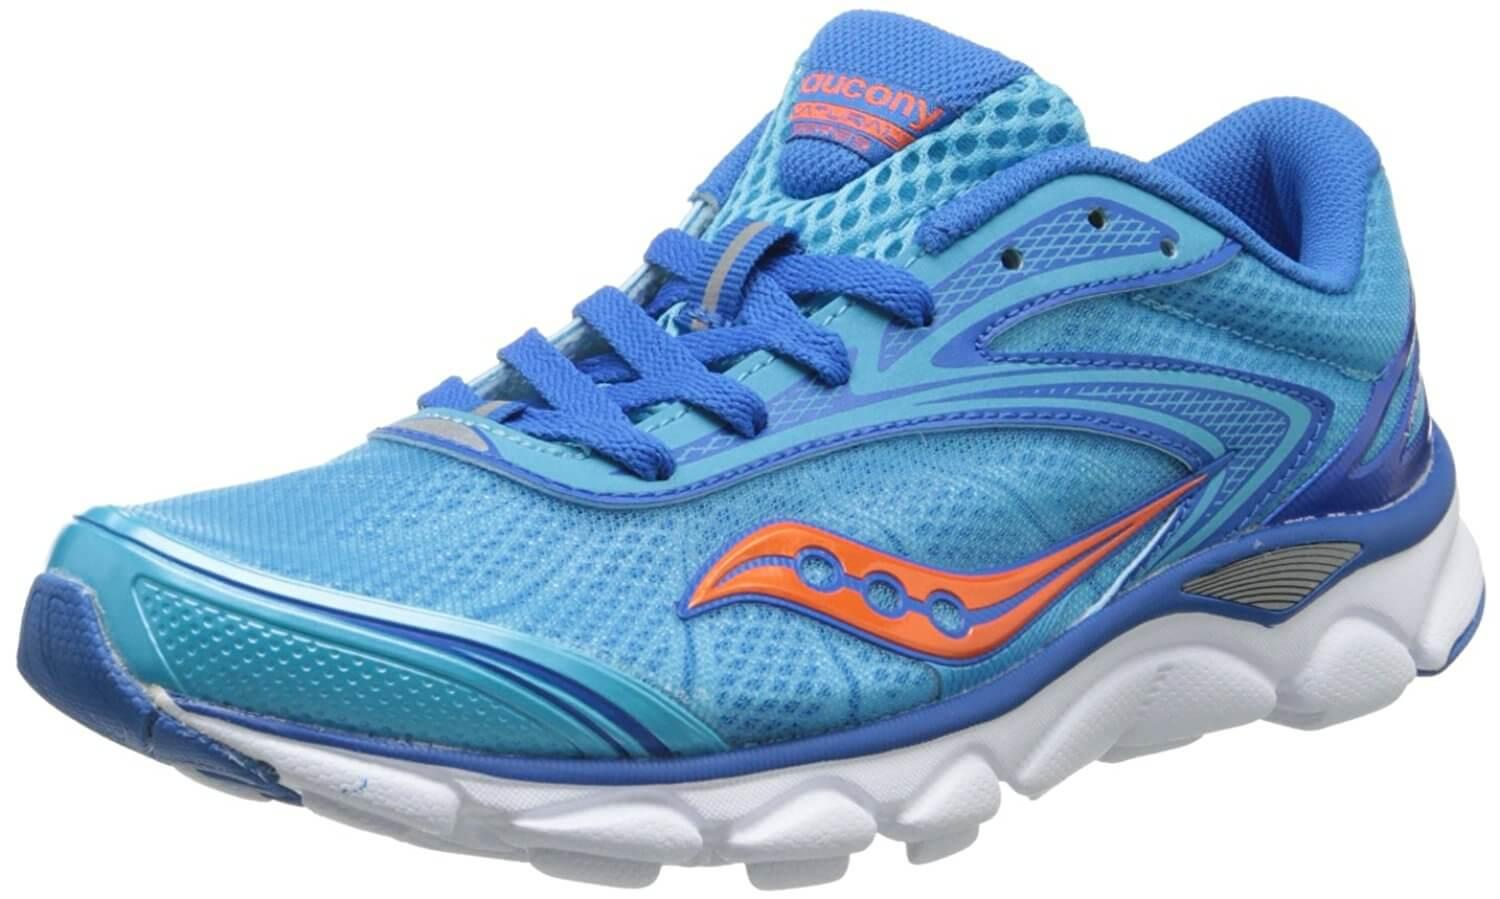 A three quarter view of the Saucony Virrata 2 running shoe